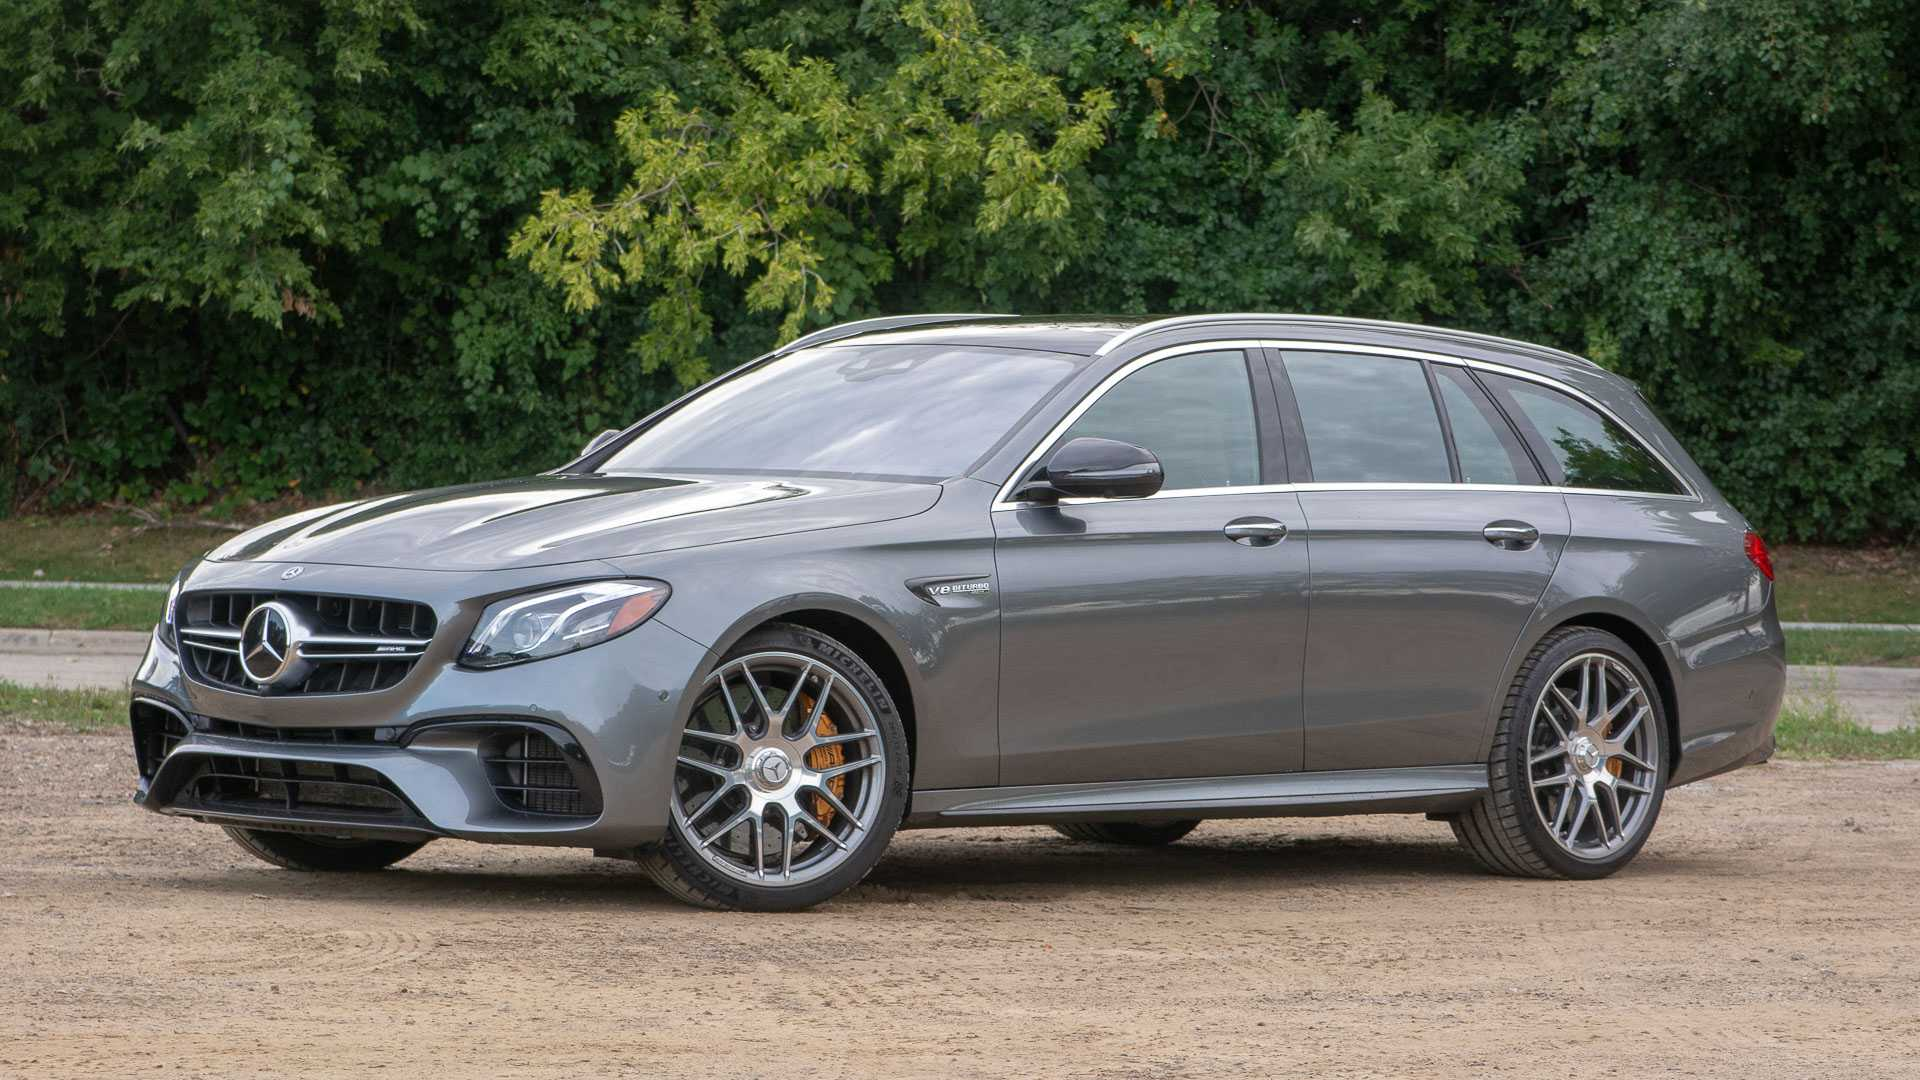 2018 Mercedes Amg E63s Wagon Review Do It All